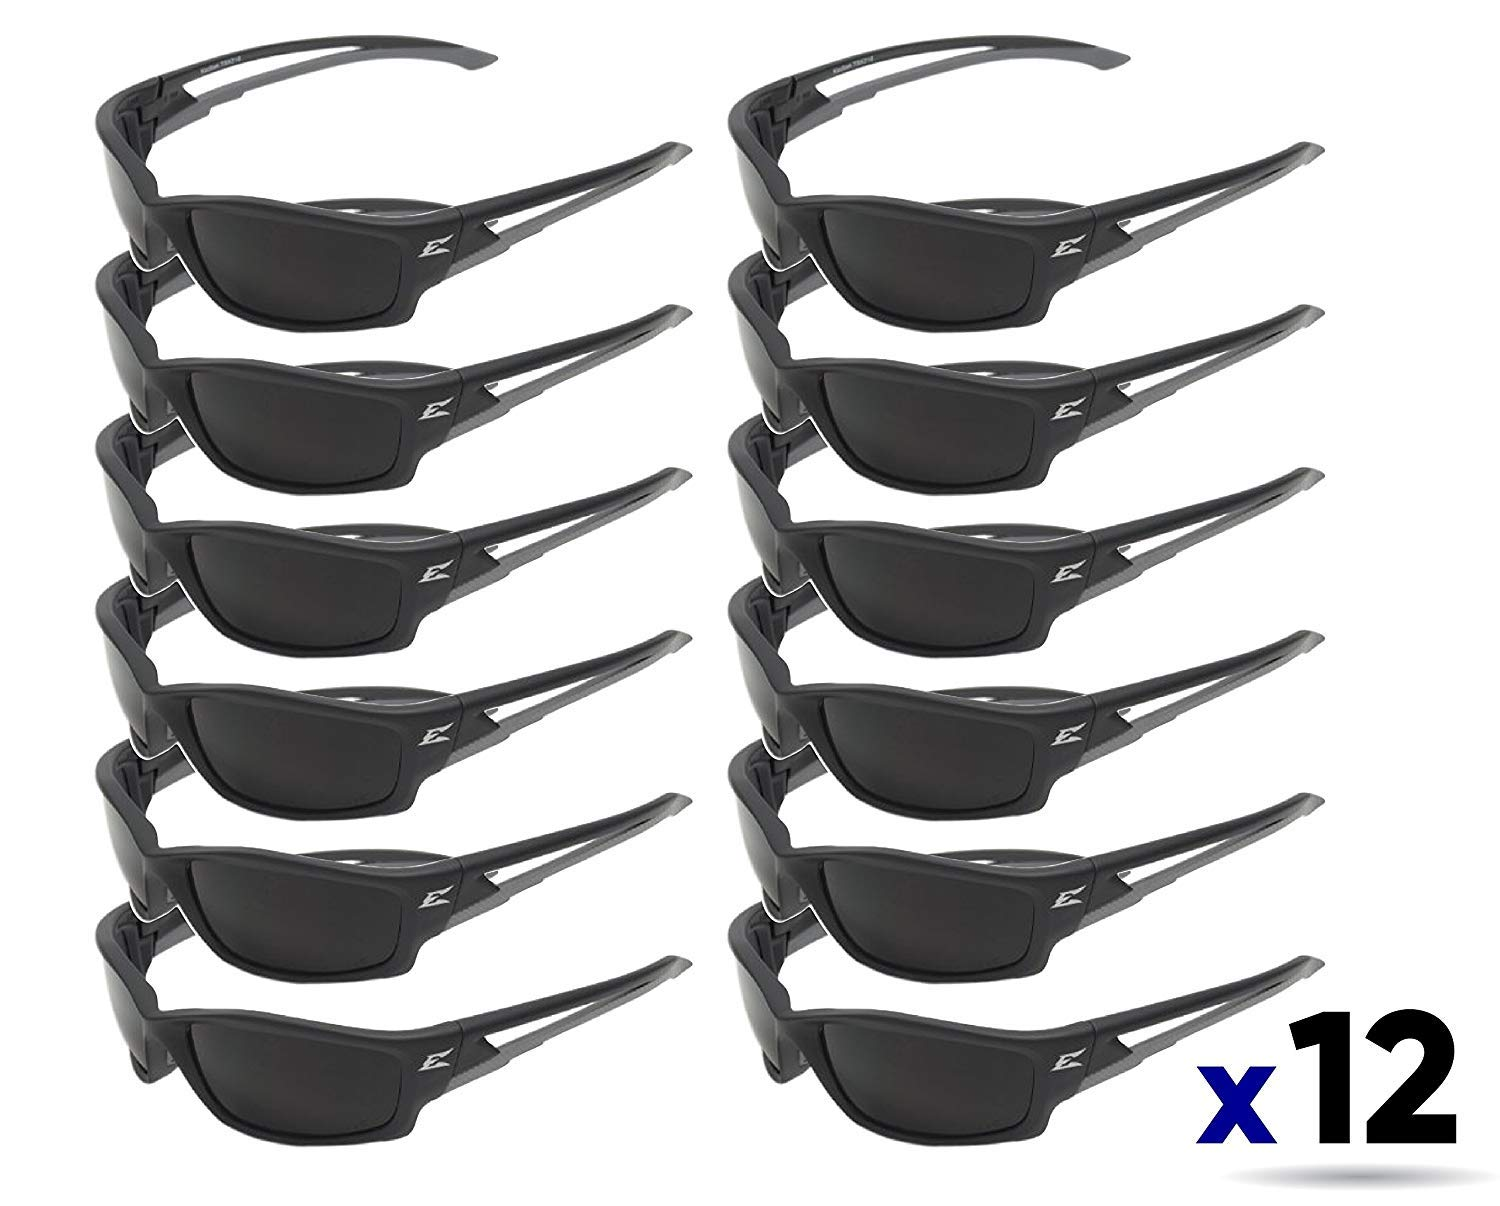 Edge Eyewear TSK216 Kazbek Polarized Safety Glasses, Black with Smoke Lens (12 Pack)